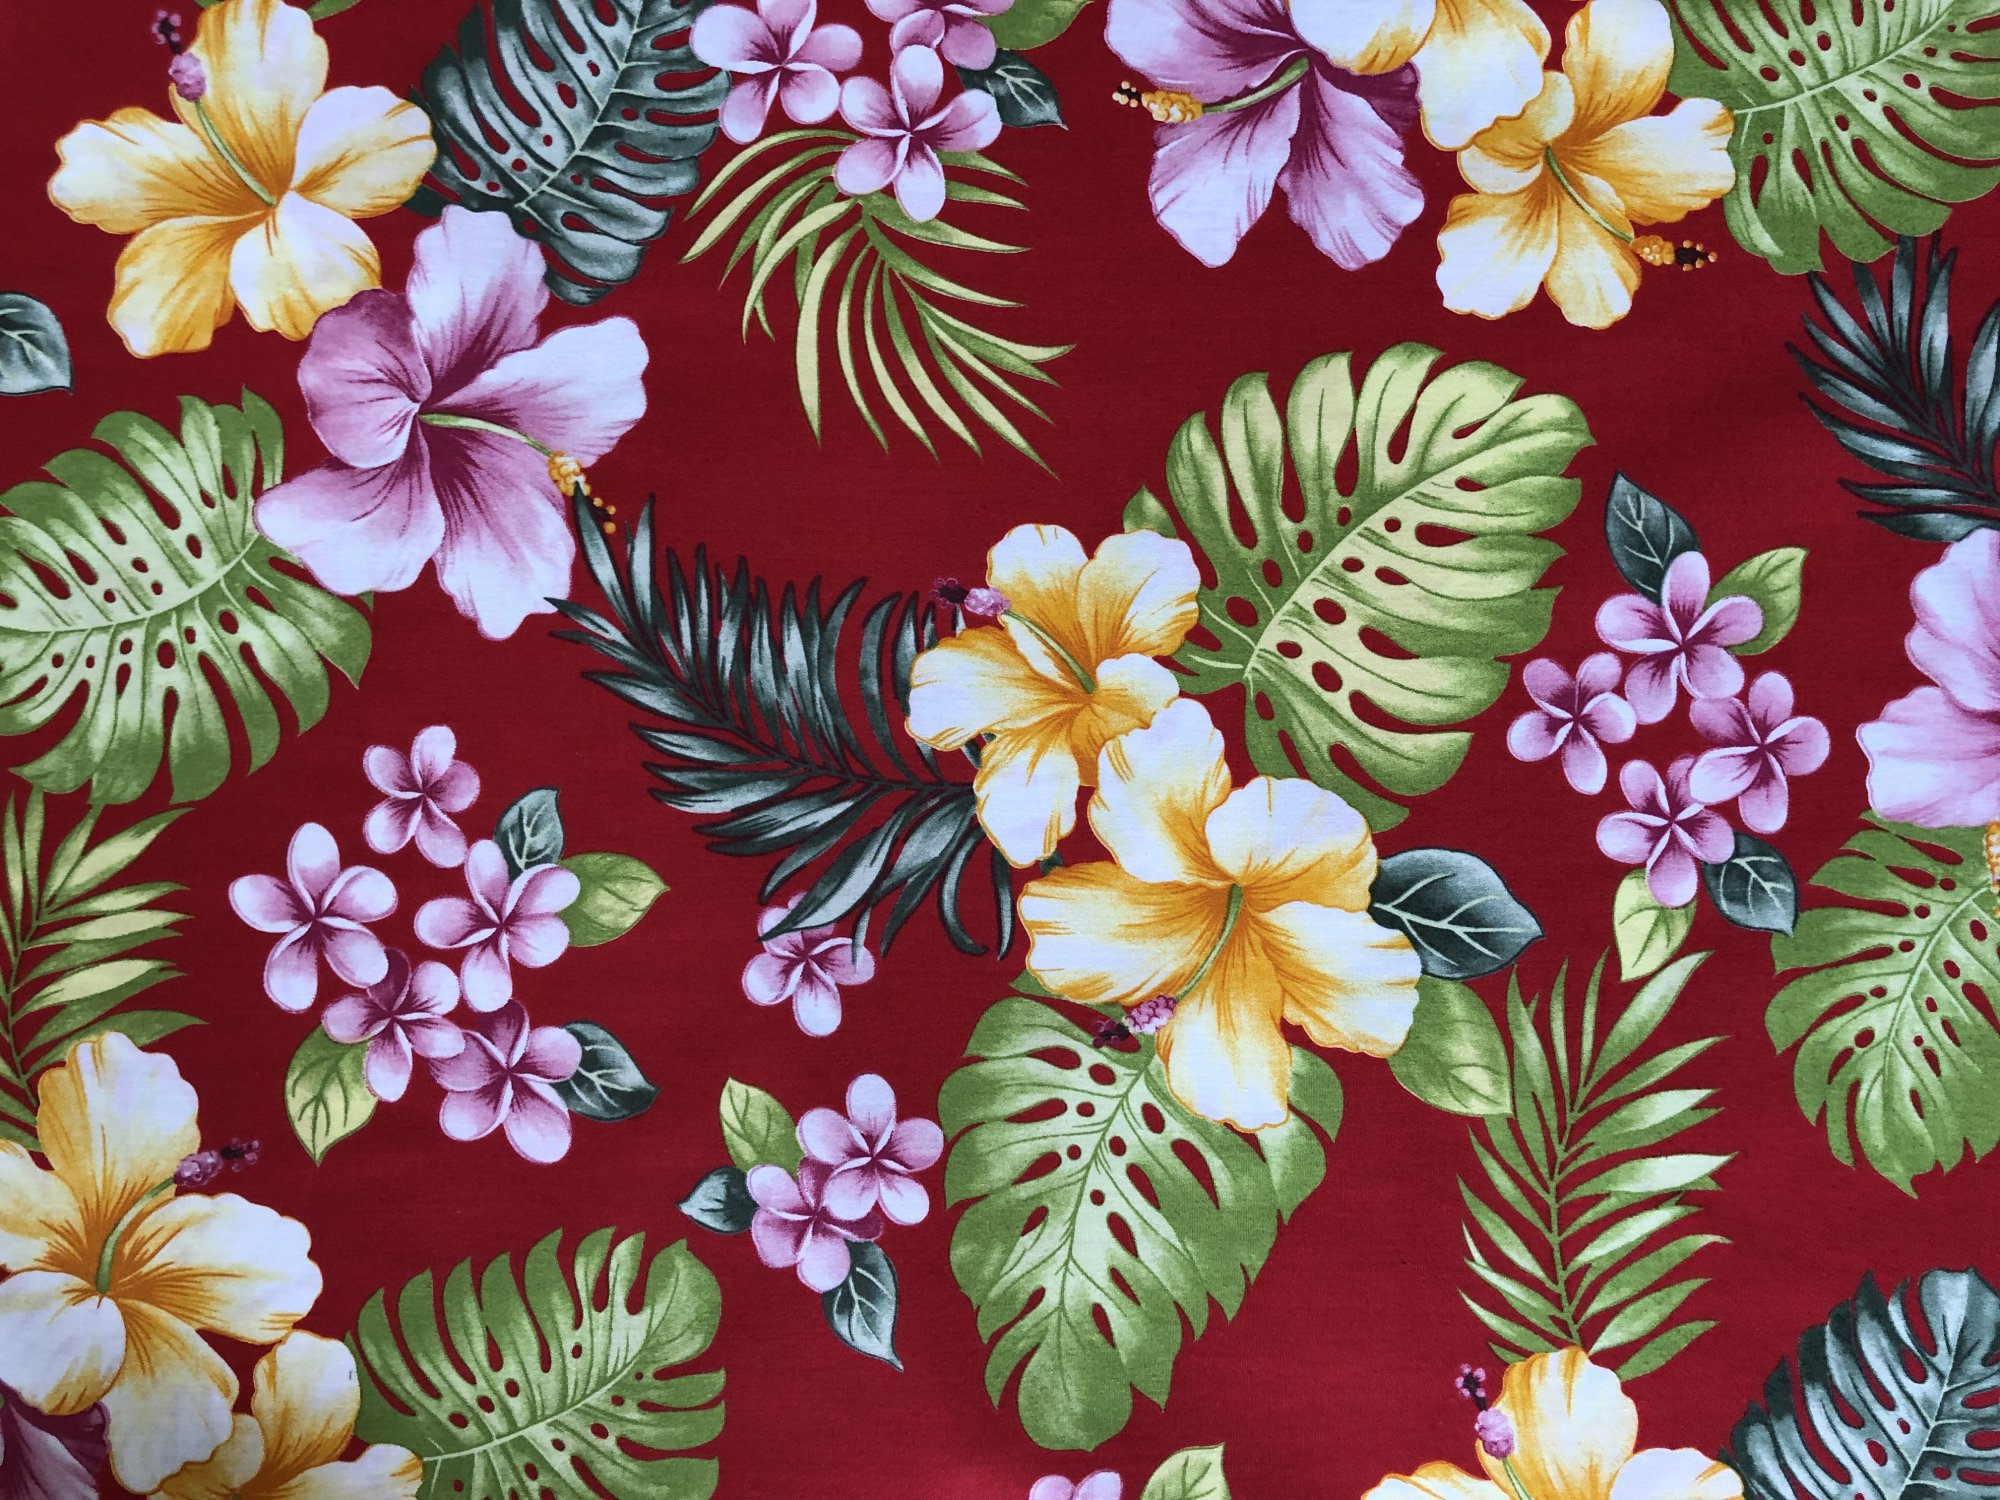 Hawaiian Floral Hibiscus on Red